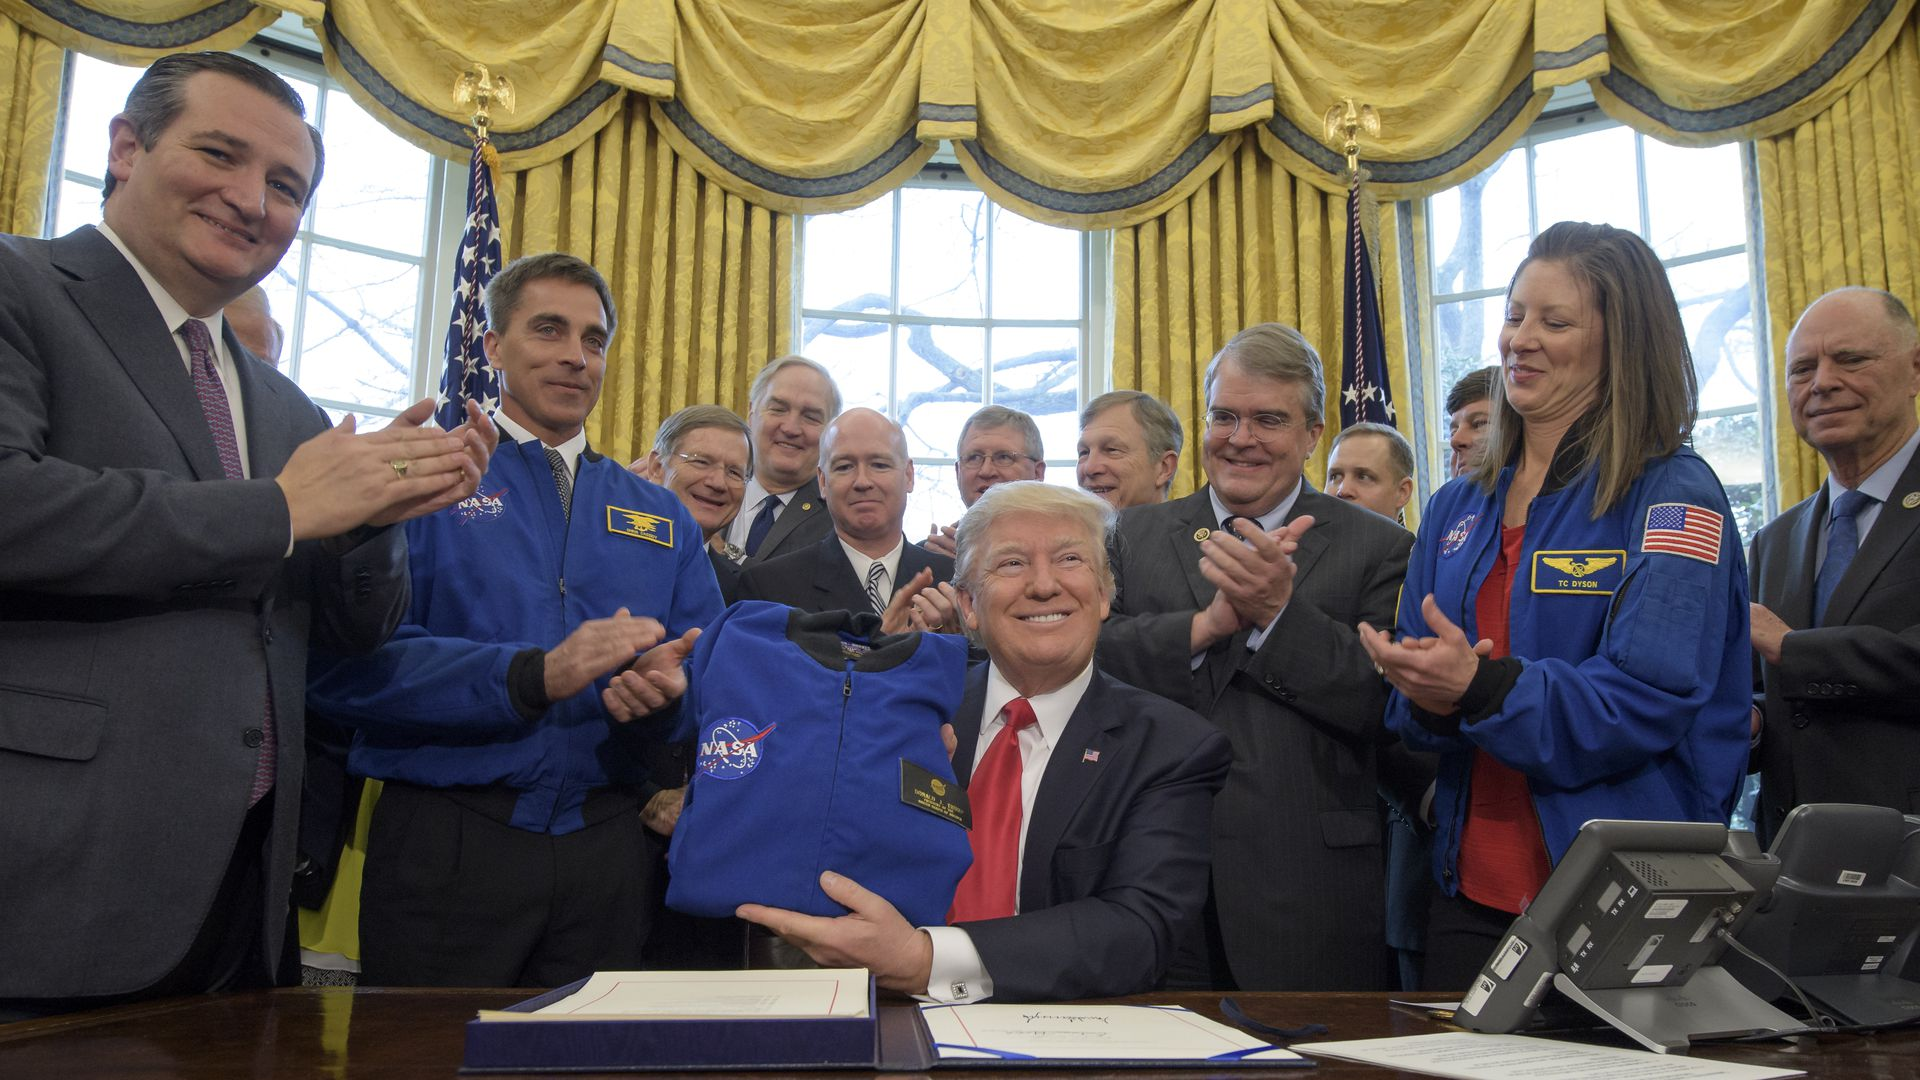 President Trump sits behind a desk, surrounded by NASA staff and Ted Cruz. Trump is holding a NASA launch jacket that he has just been gifted.